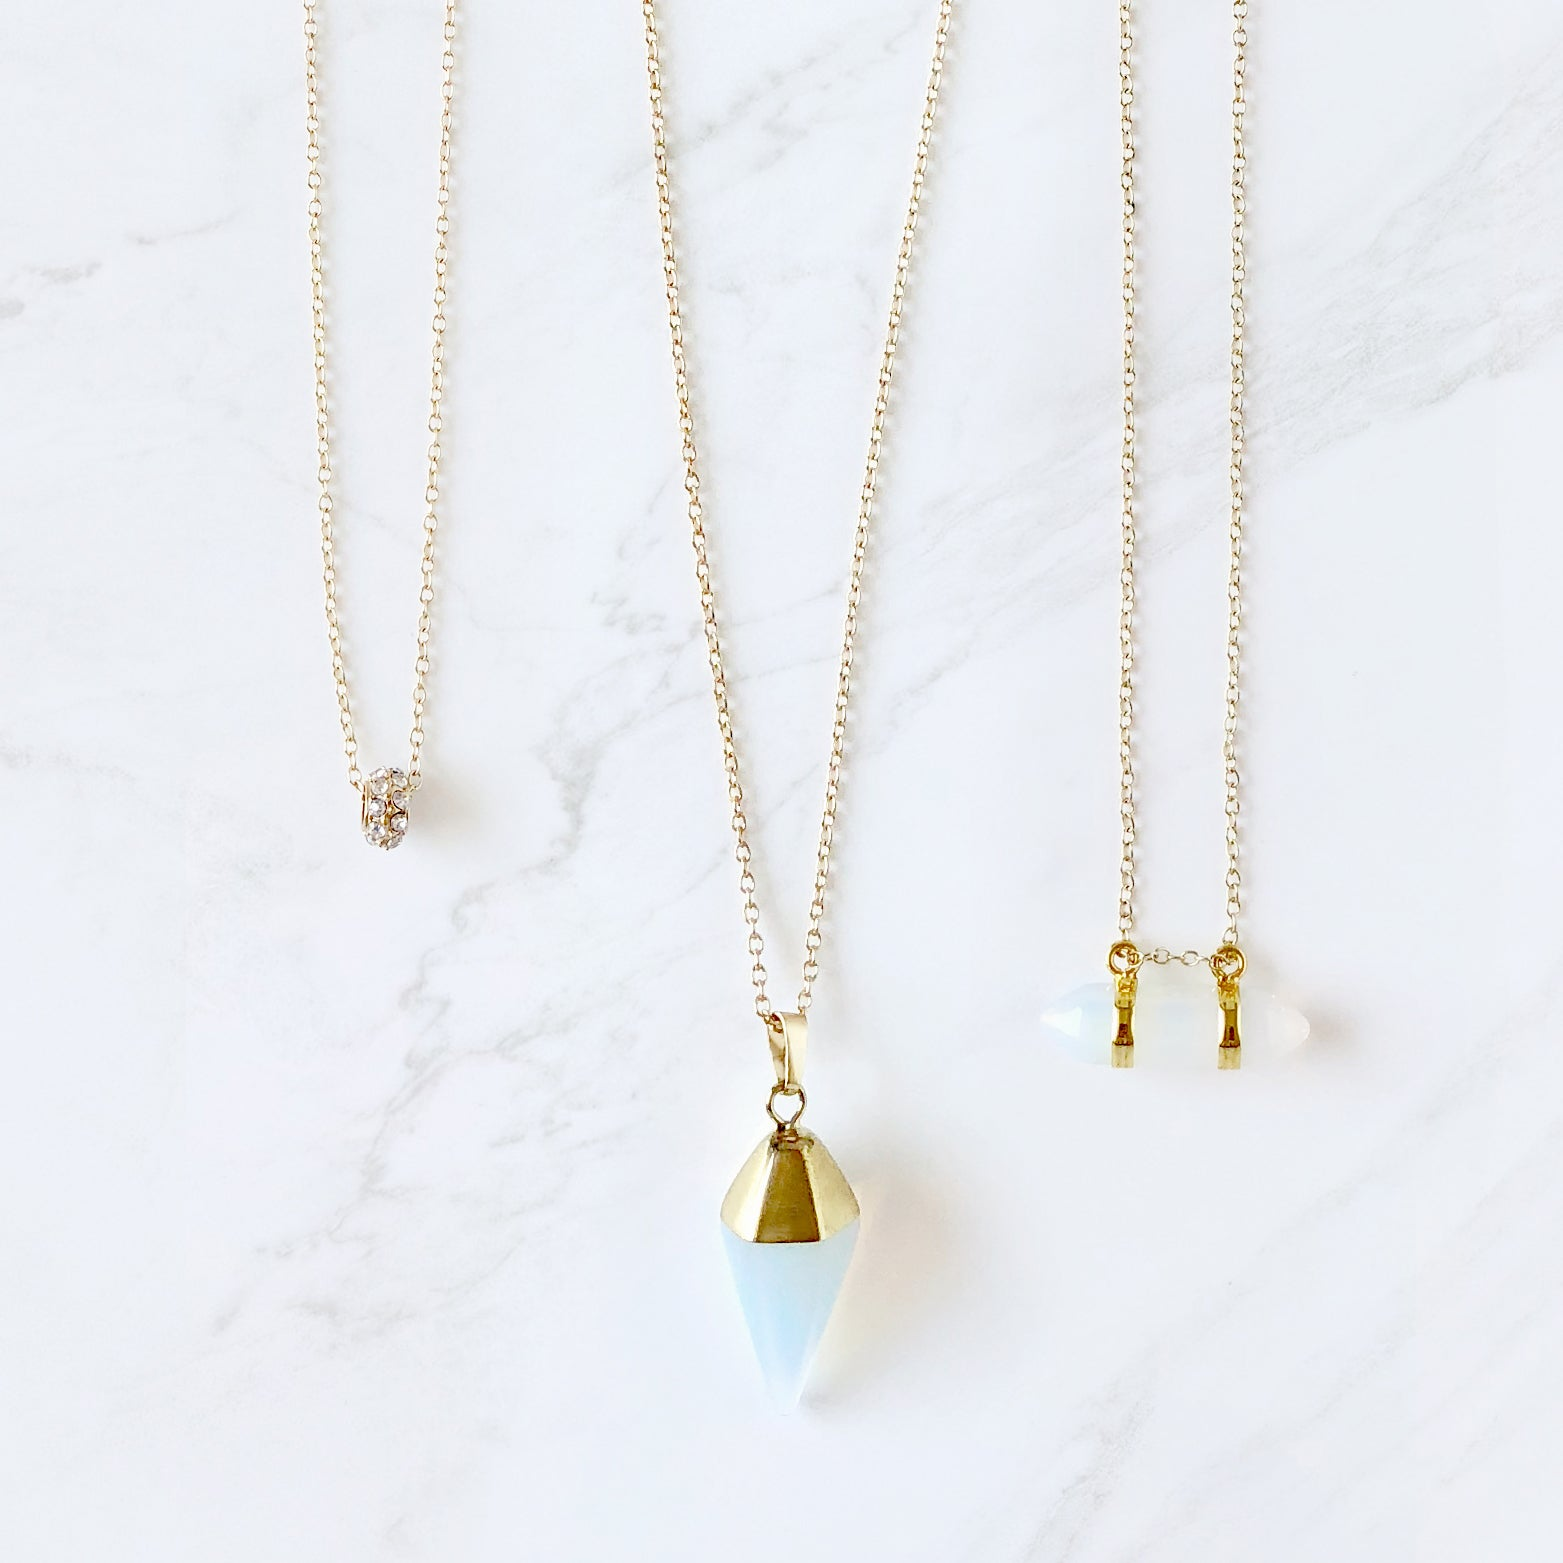 Crystal & Opalite Pendant Necklace Set